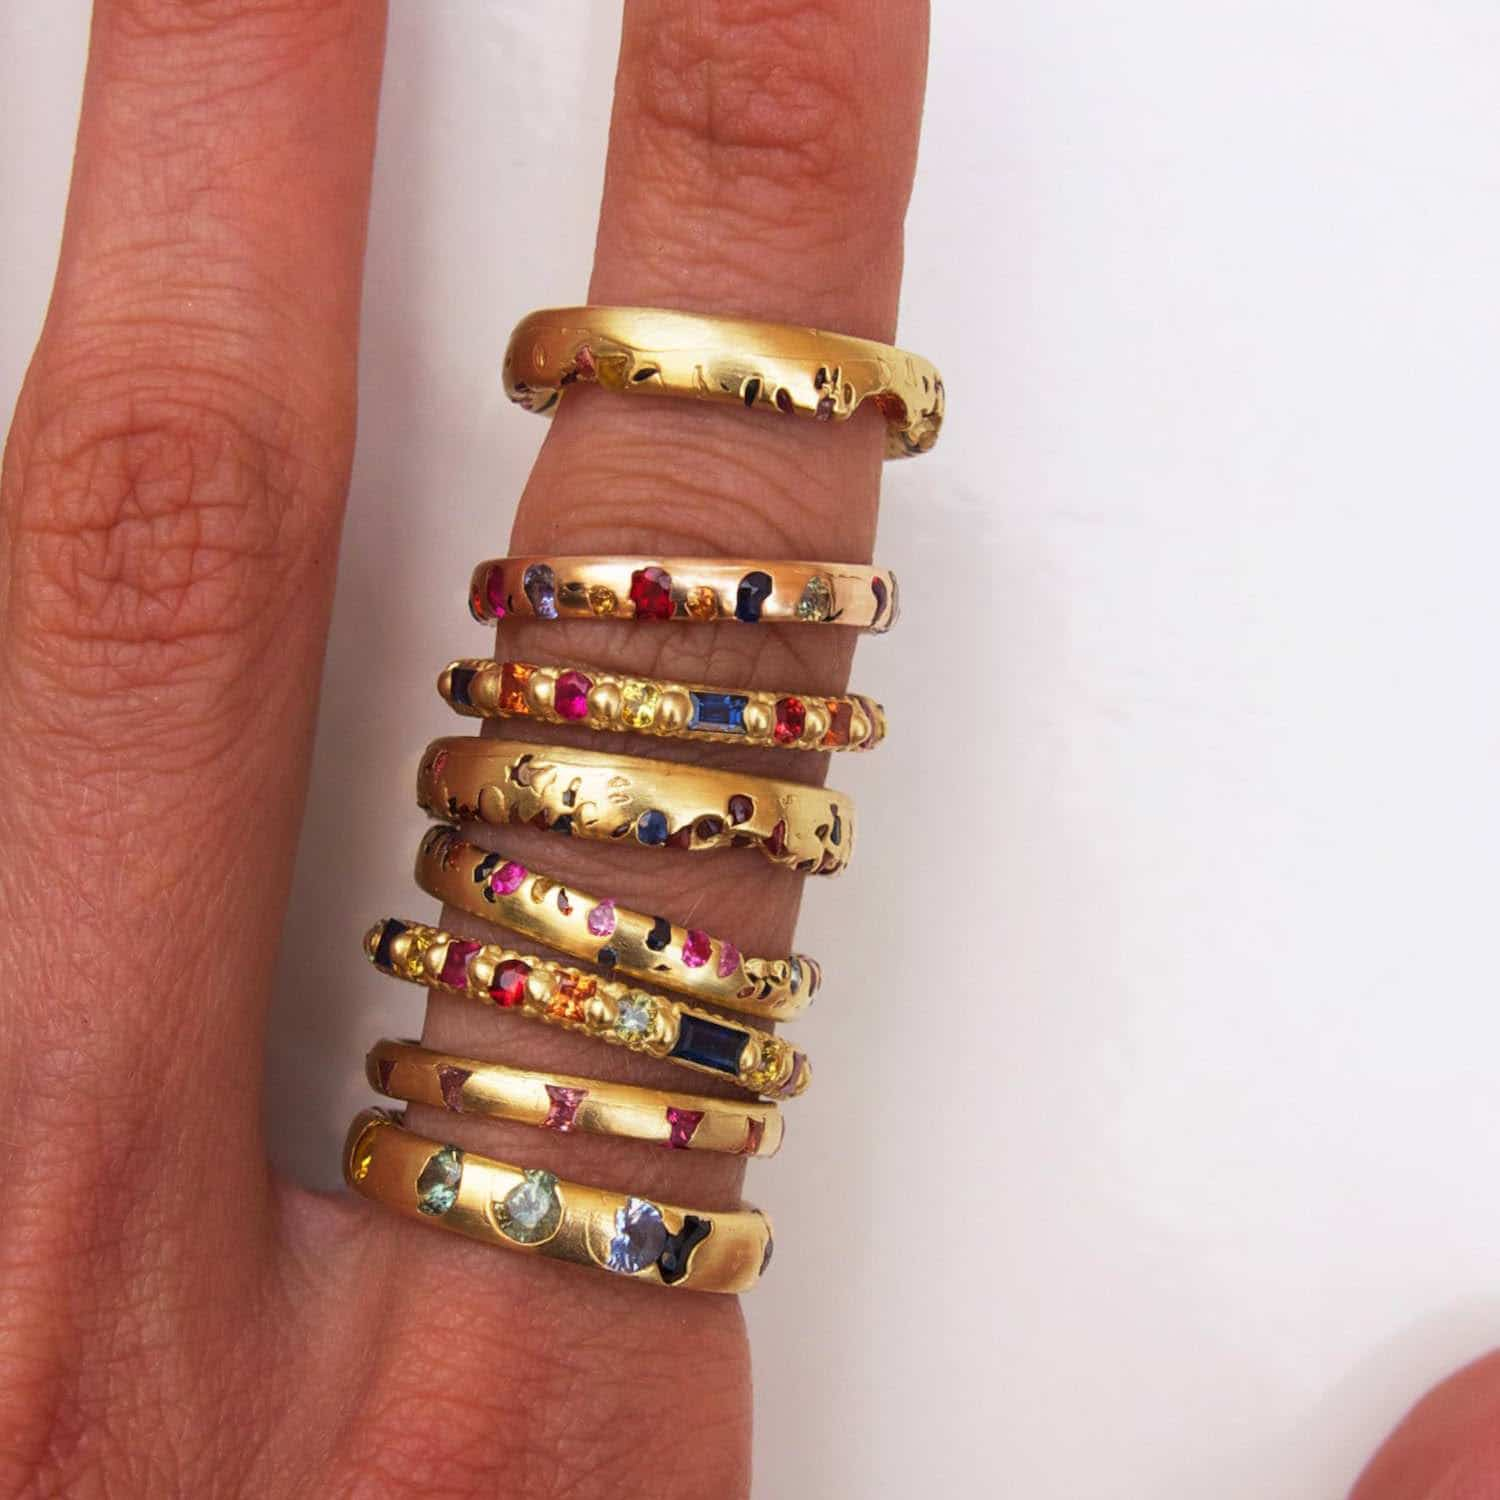 Eugene's NEWTW!ST Polly Wales rings